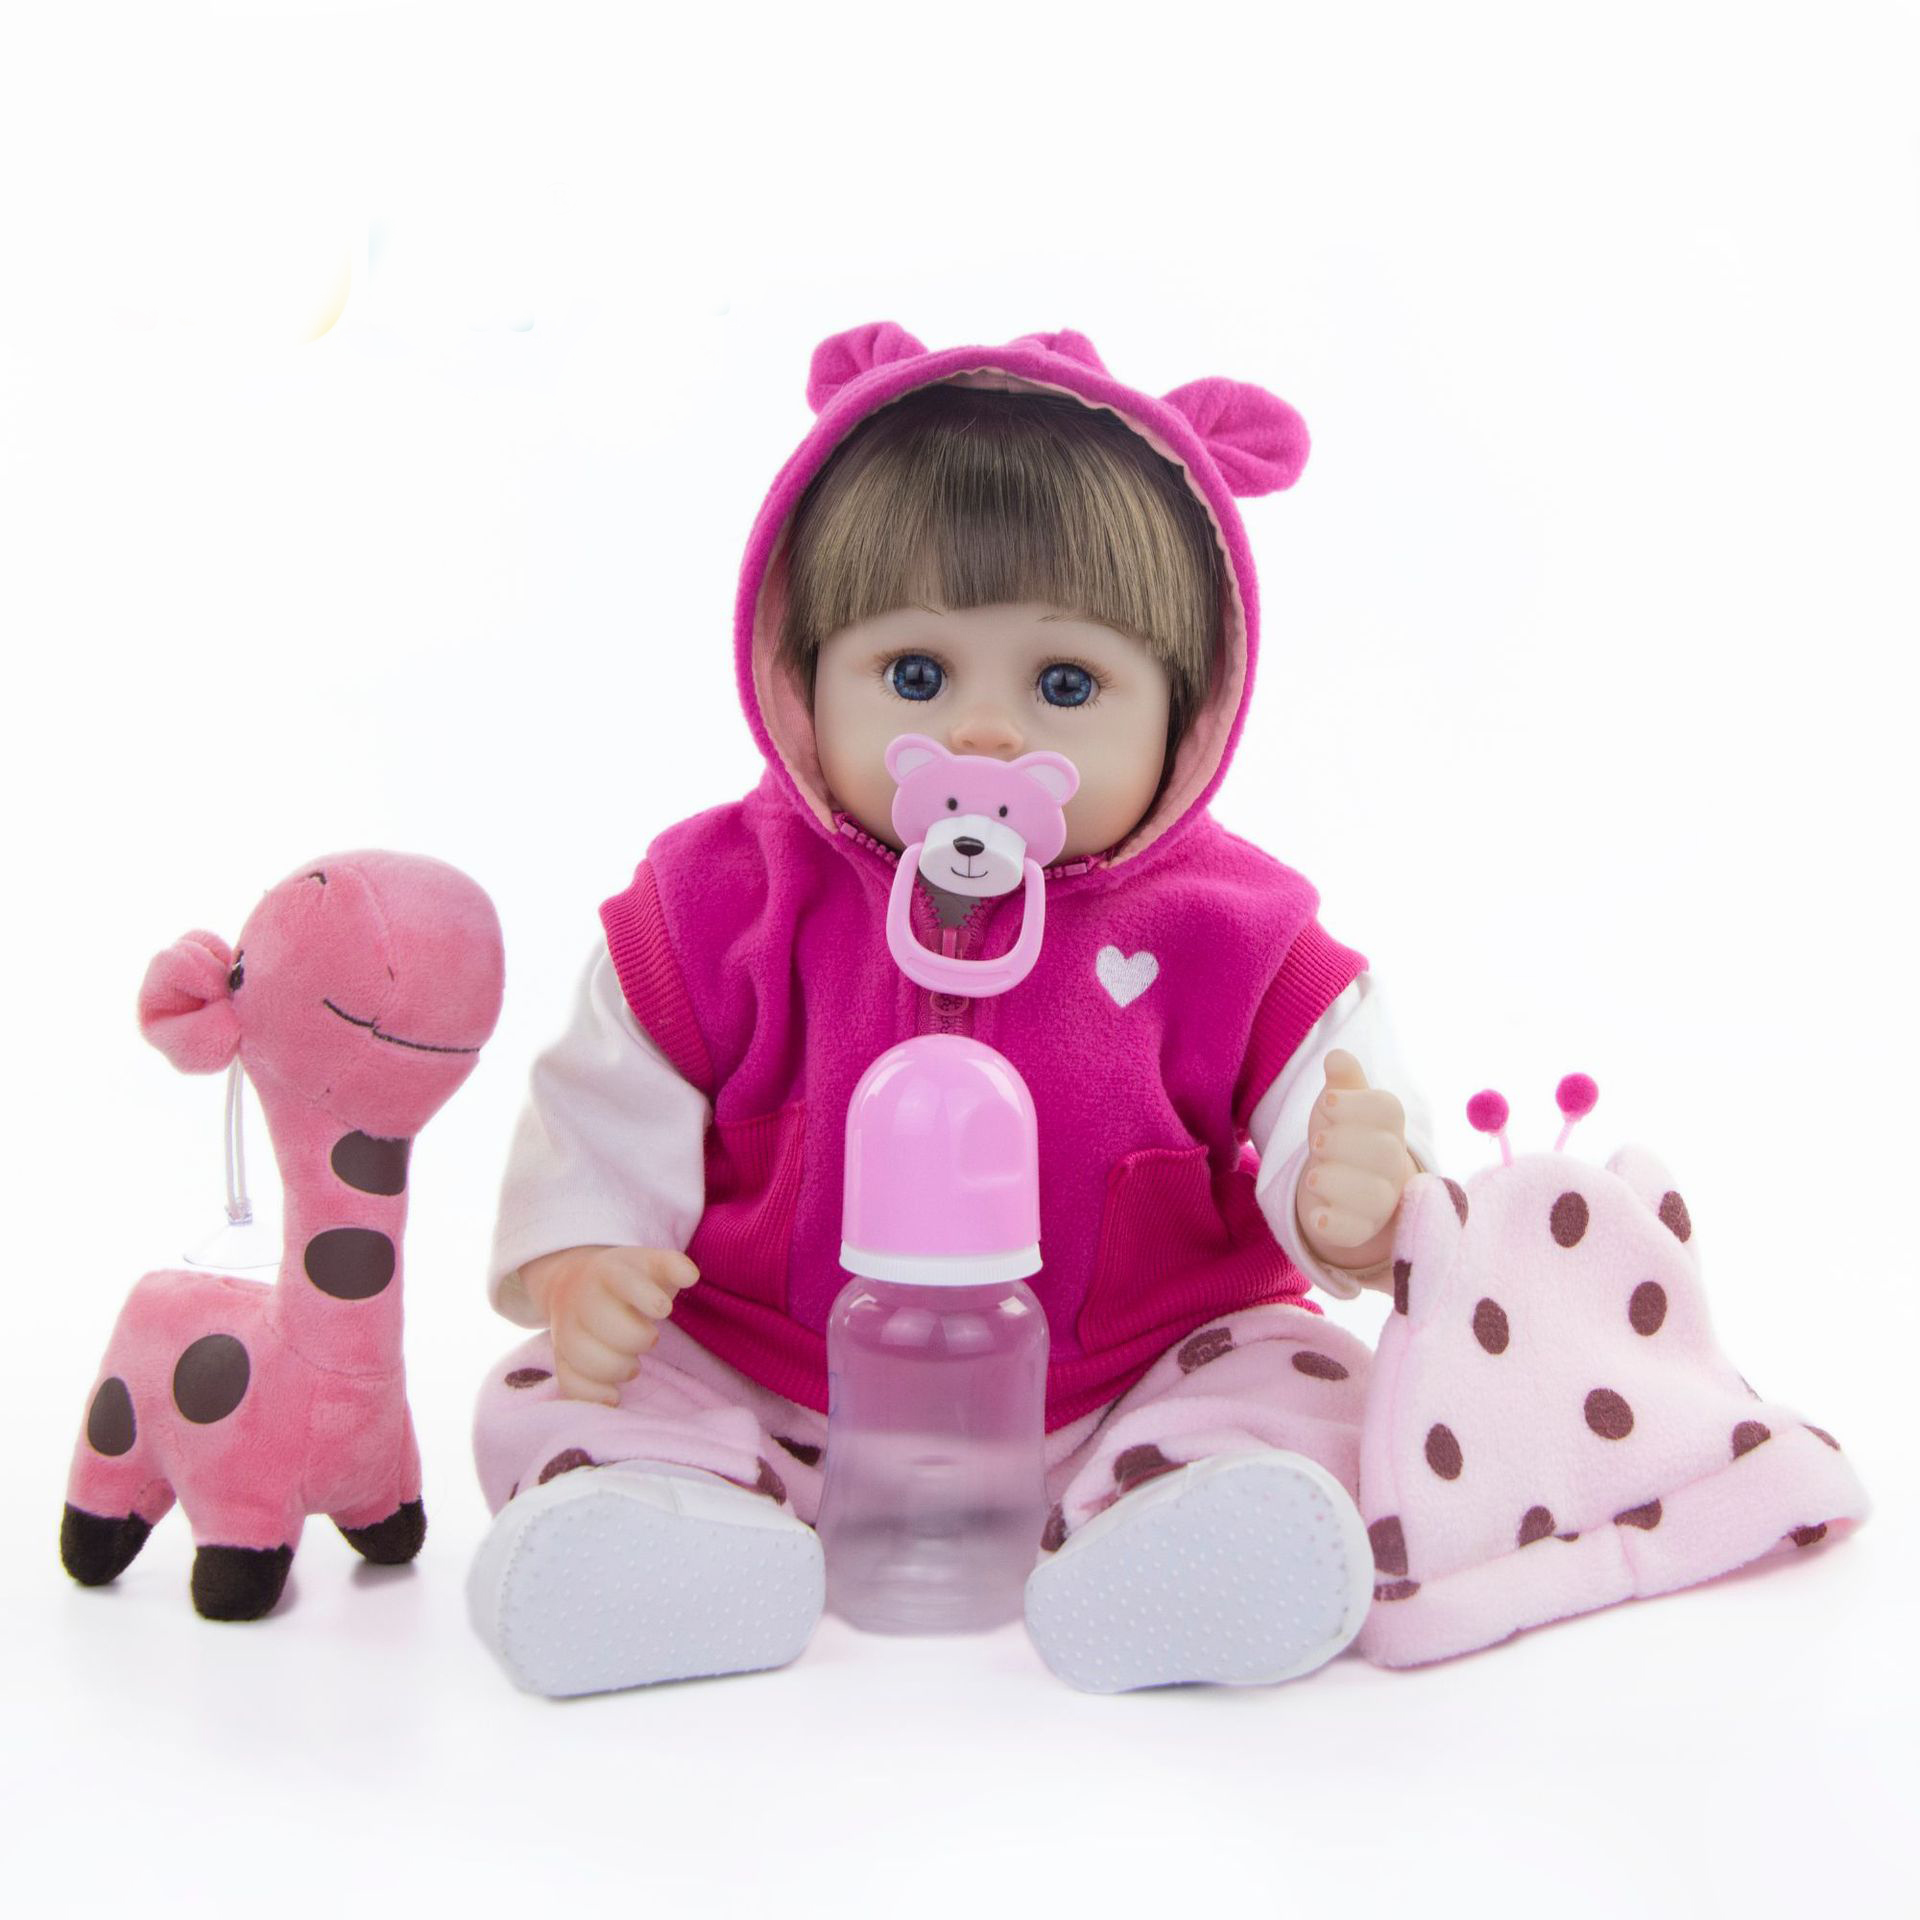 17inch Soft Silicone Reborn Dolls pink reborn-baby collectible Dolls modeling princess toddler Kids Real touch bebe Xmas gifts17inch Soft Silicone Reborn Dolls pink reborn-baby collectible Dolls modeling princess toddler Kids Real touch bebe Xmas gifts